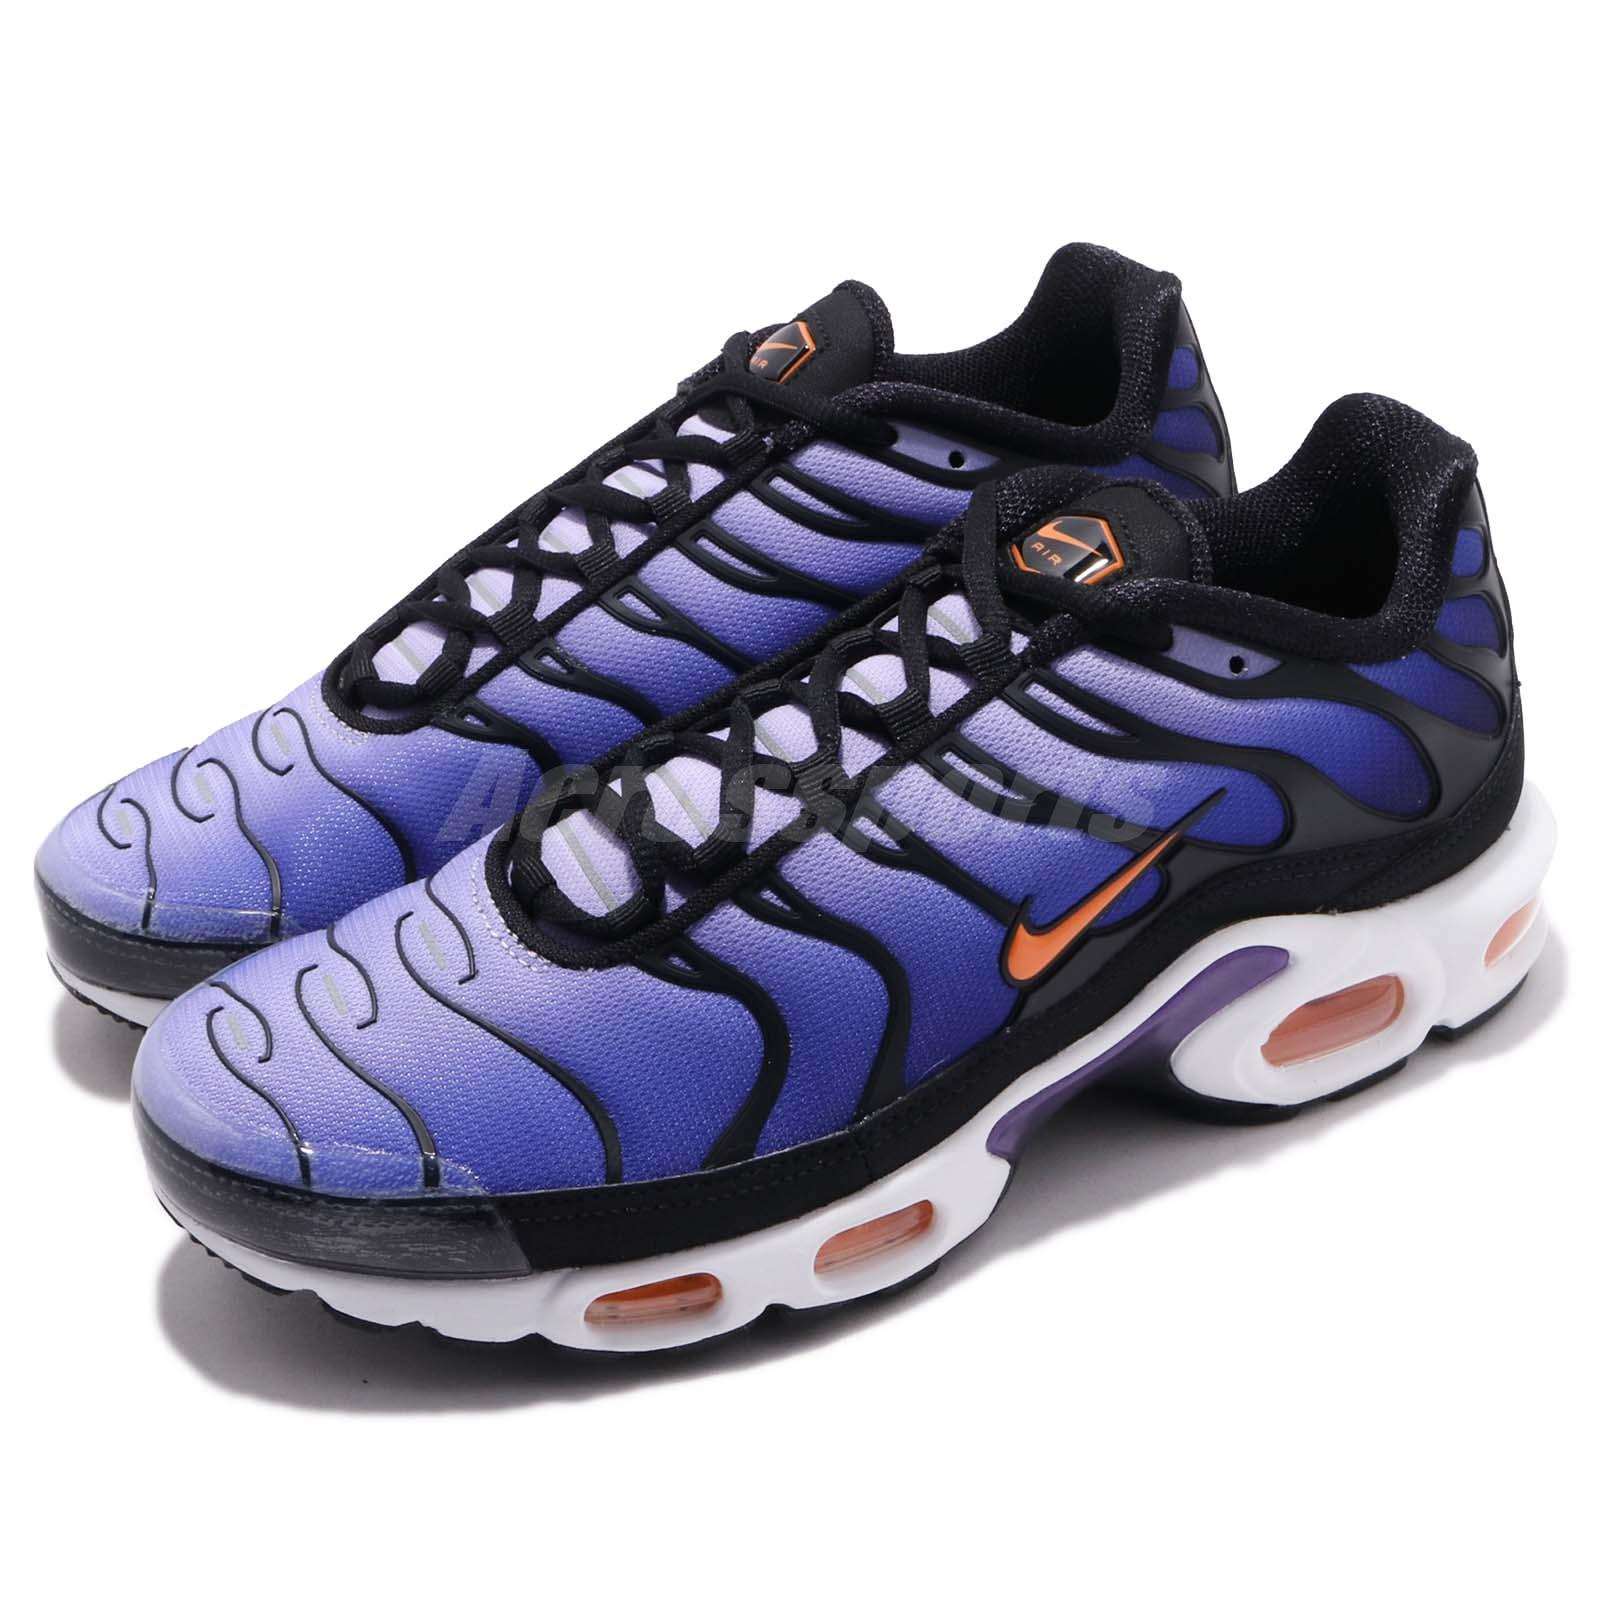 best website 79a17 98d64 Details about Nike Air Max Plus OG Voltage Purple Black Orange Mens Running  Shoes BQ4629-002